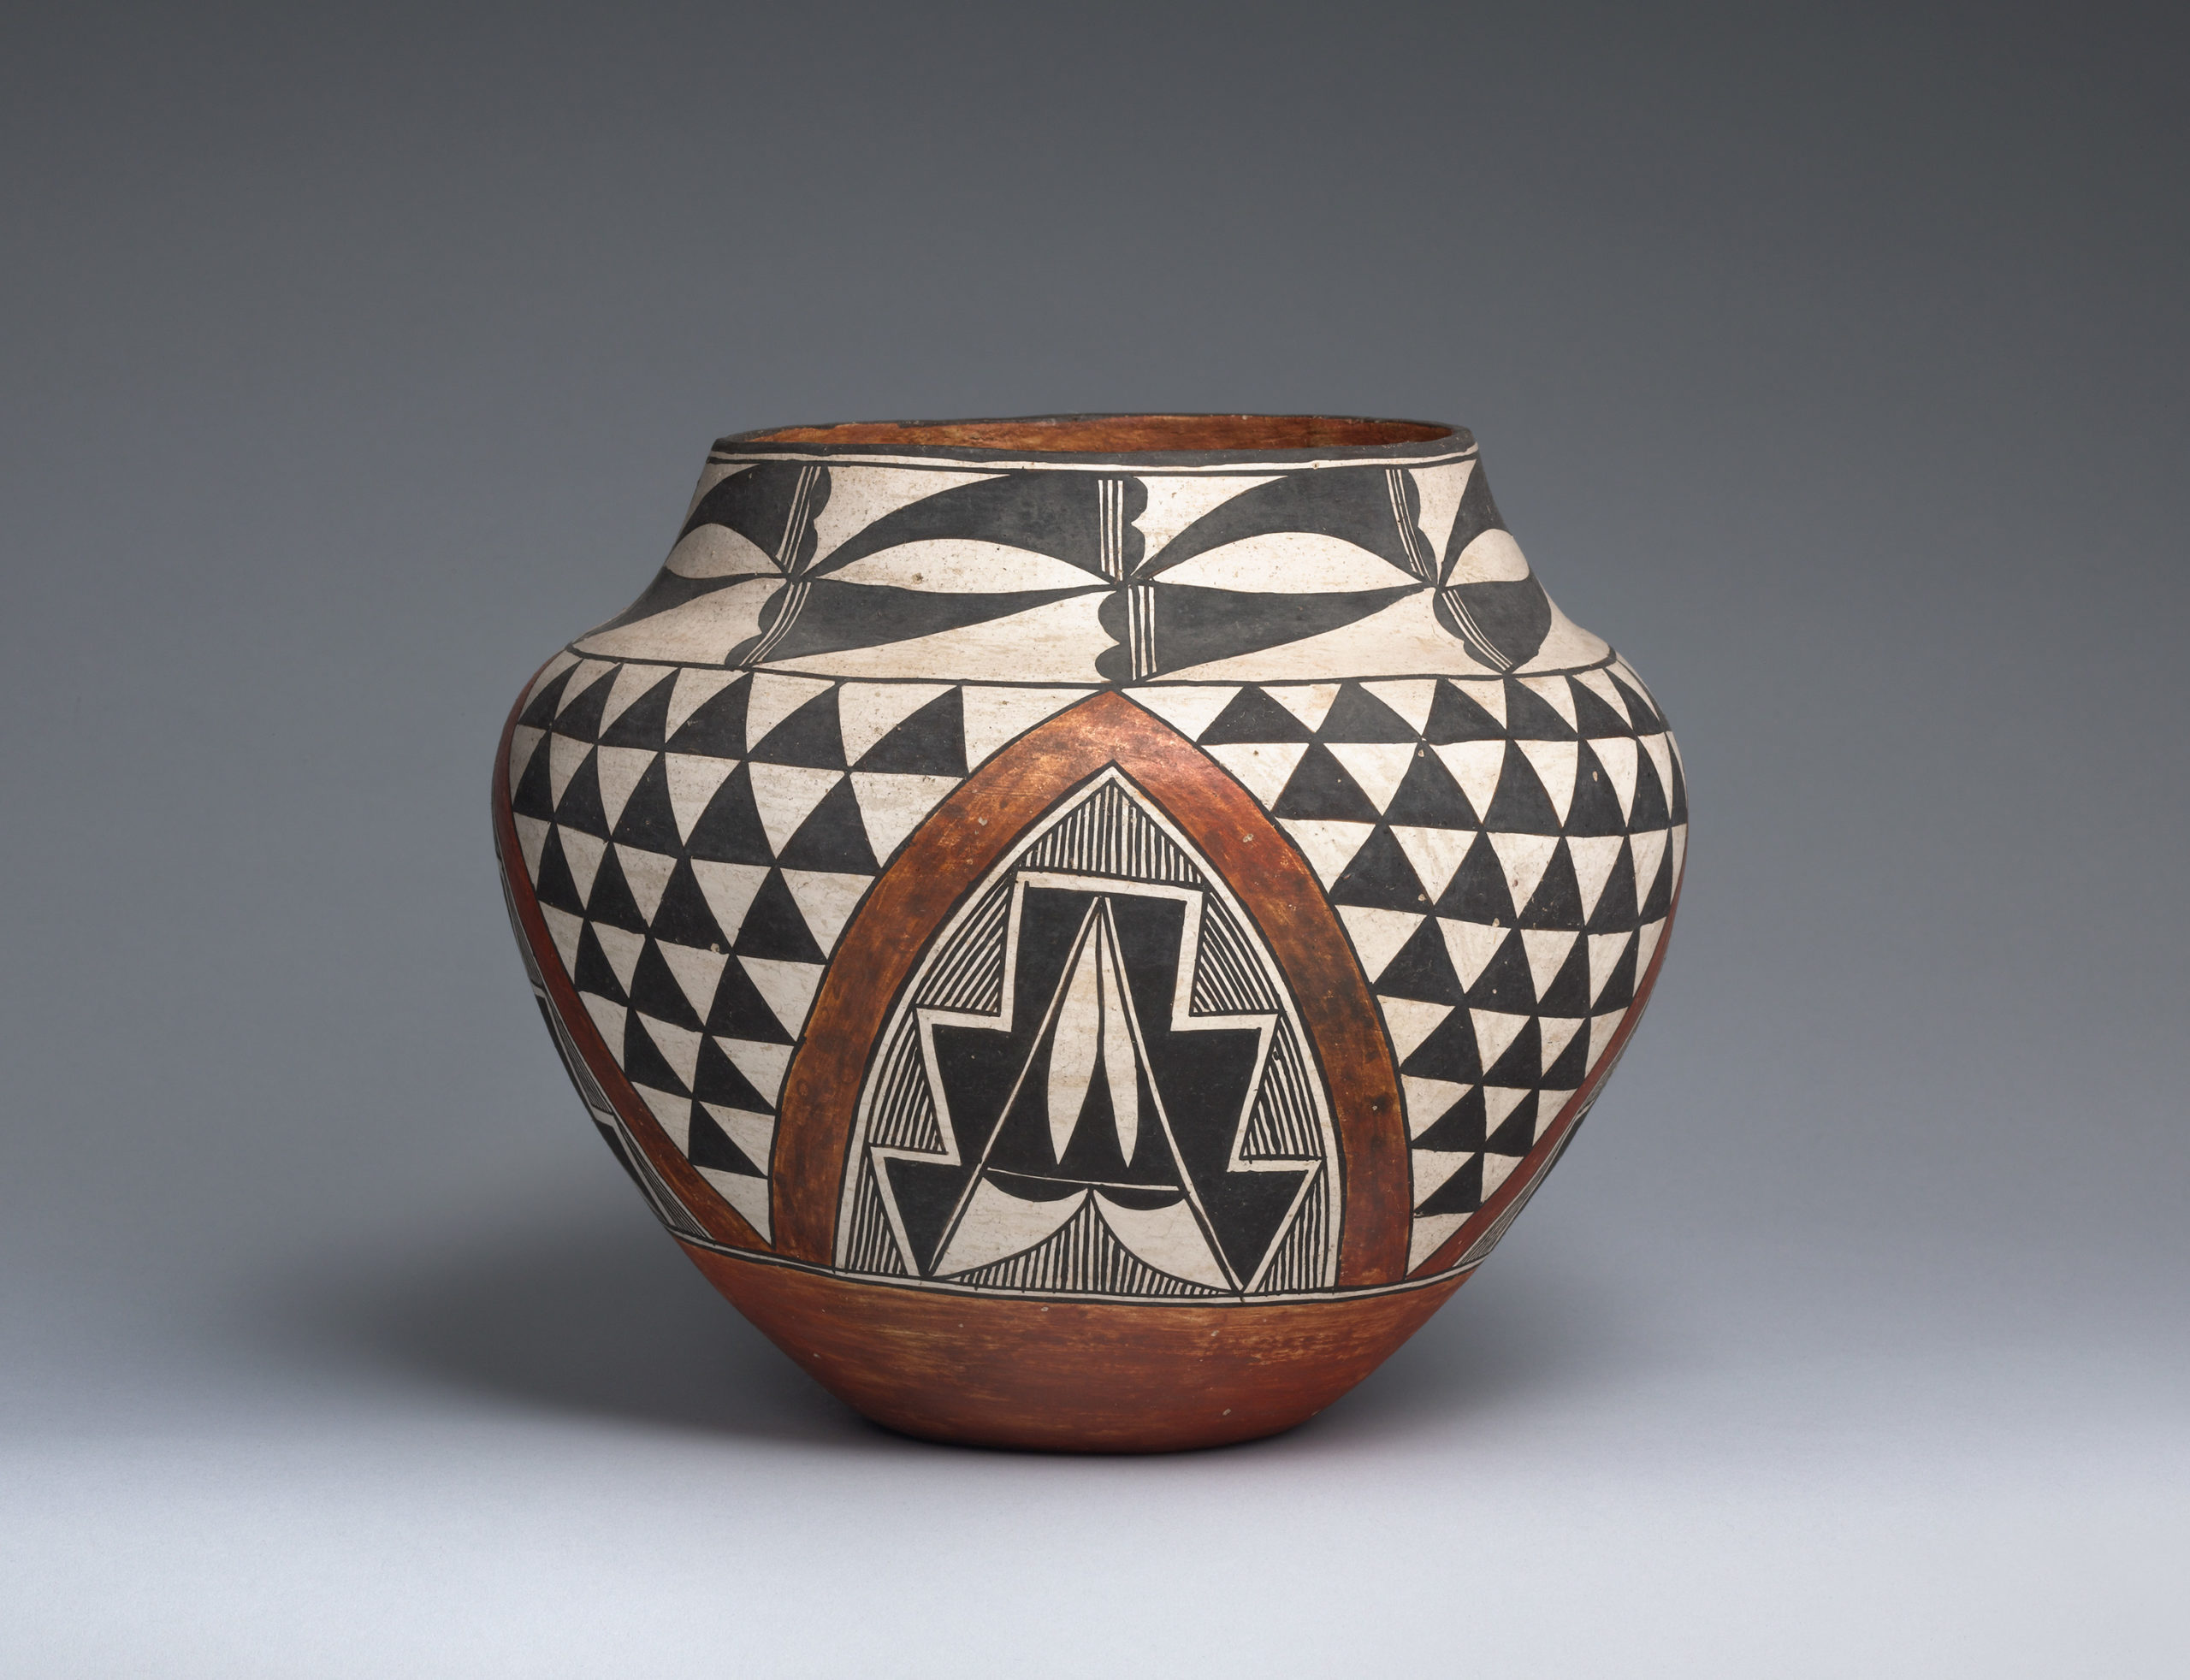 Brown Acoma jar designed with black and white geometric patterns and a centered arch.